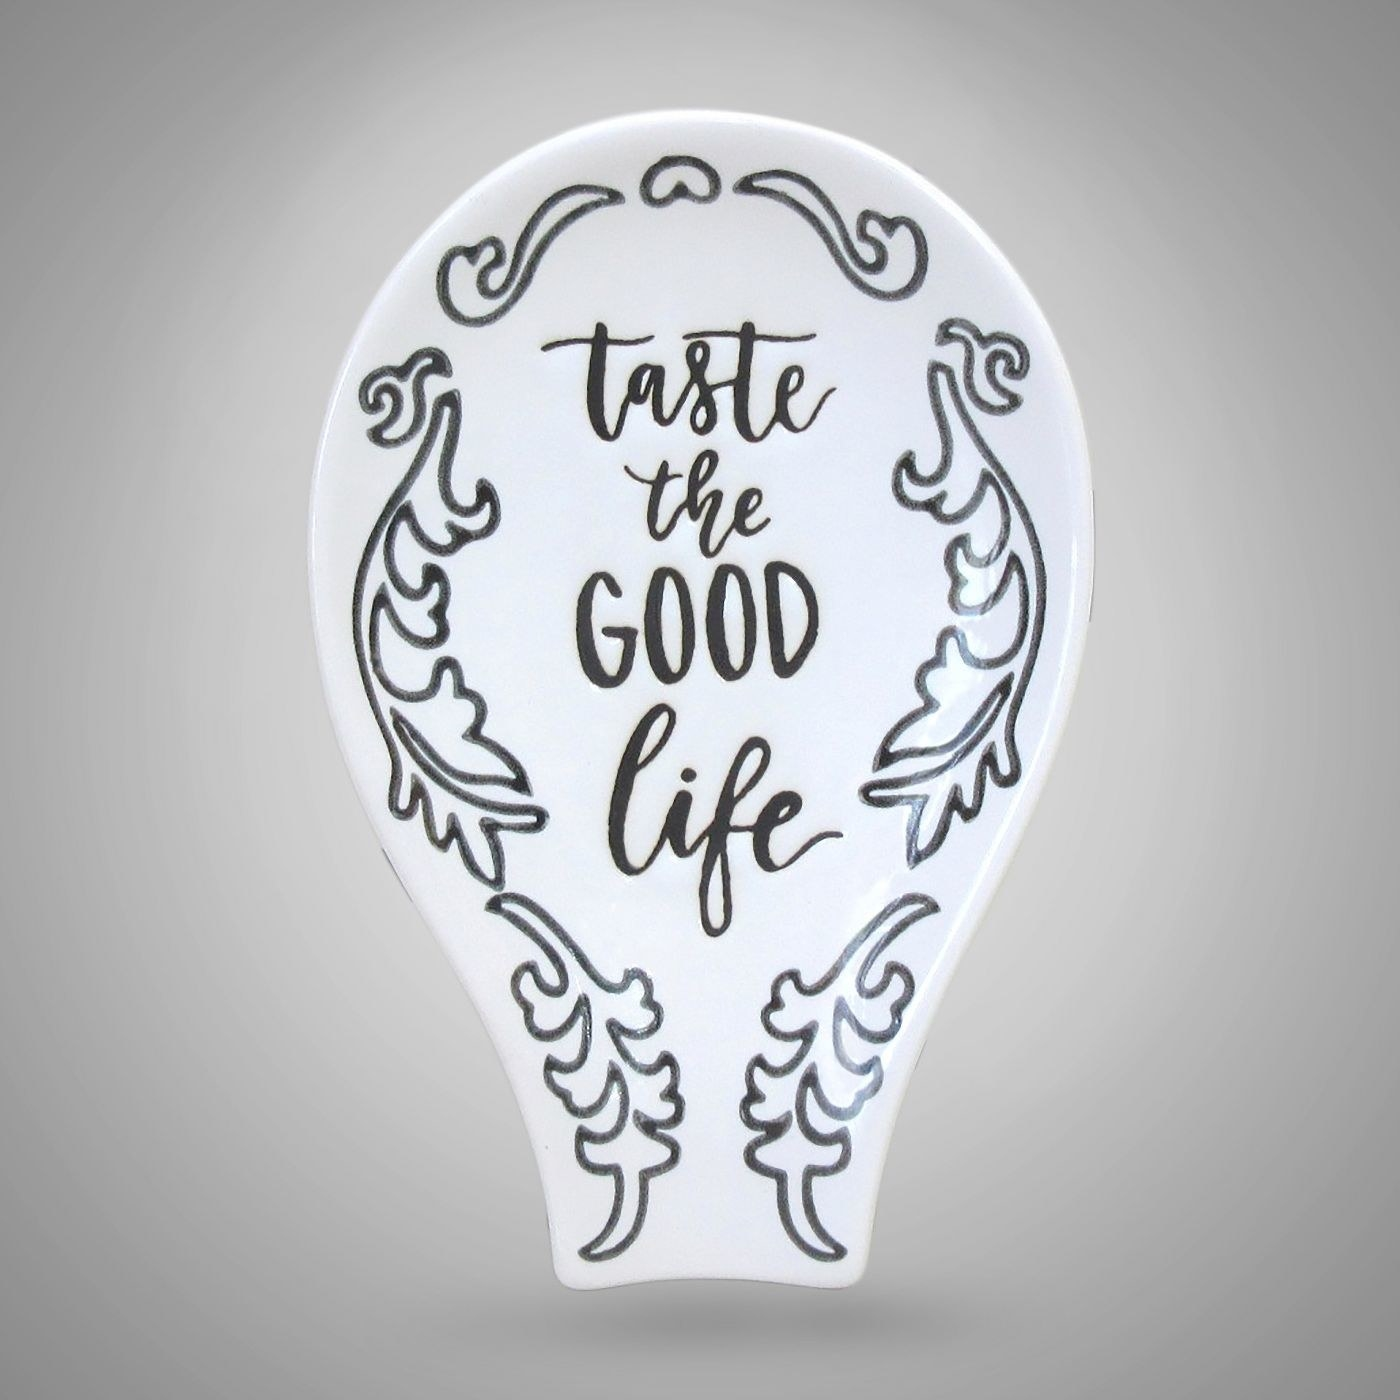 A black and white spoon rest